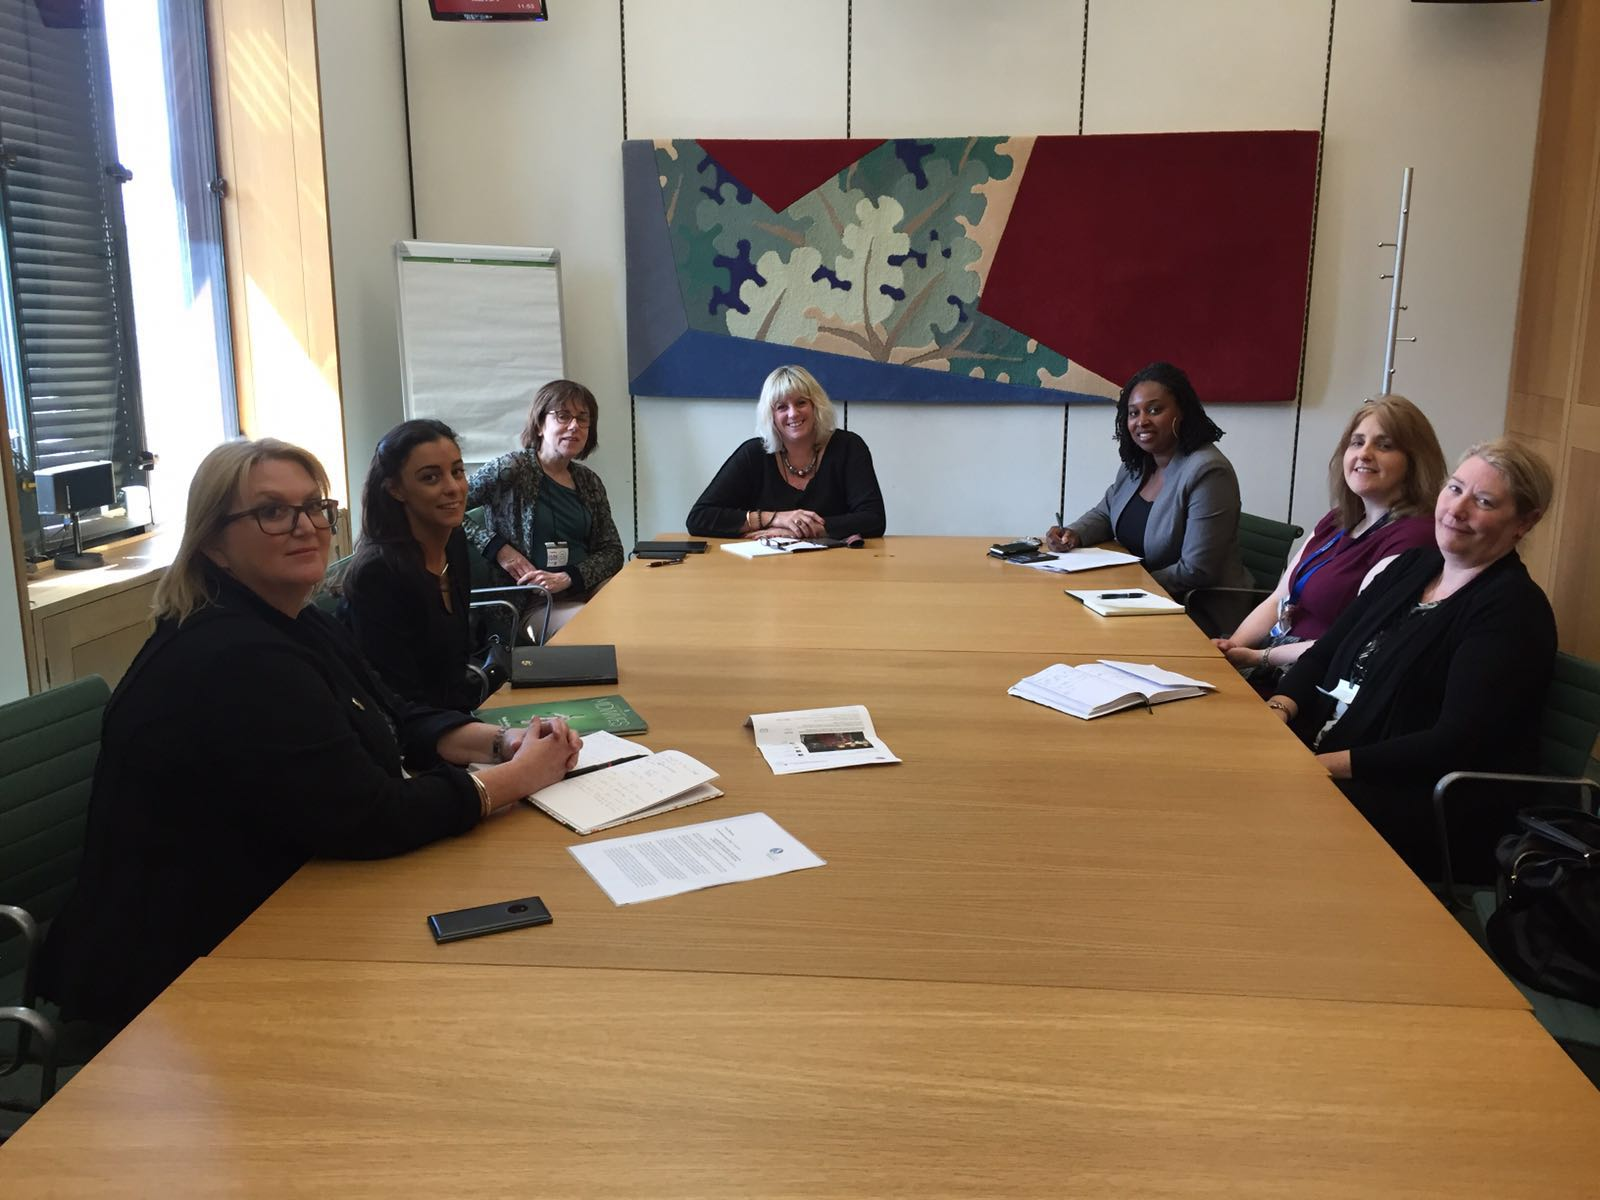 Dawn_Butler_meets_with_the_Royal_College_of_Midwives_at_Portcullis_House.jpg